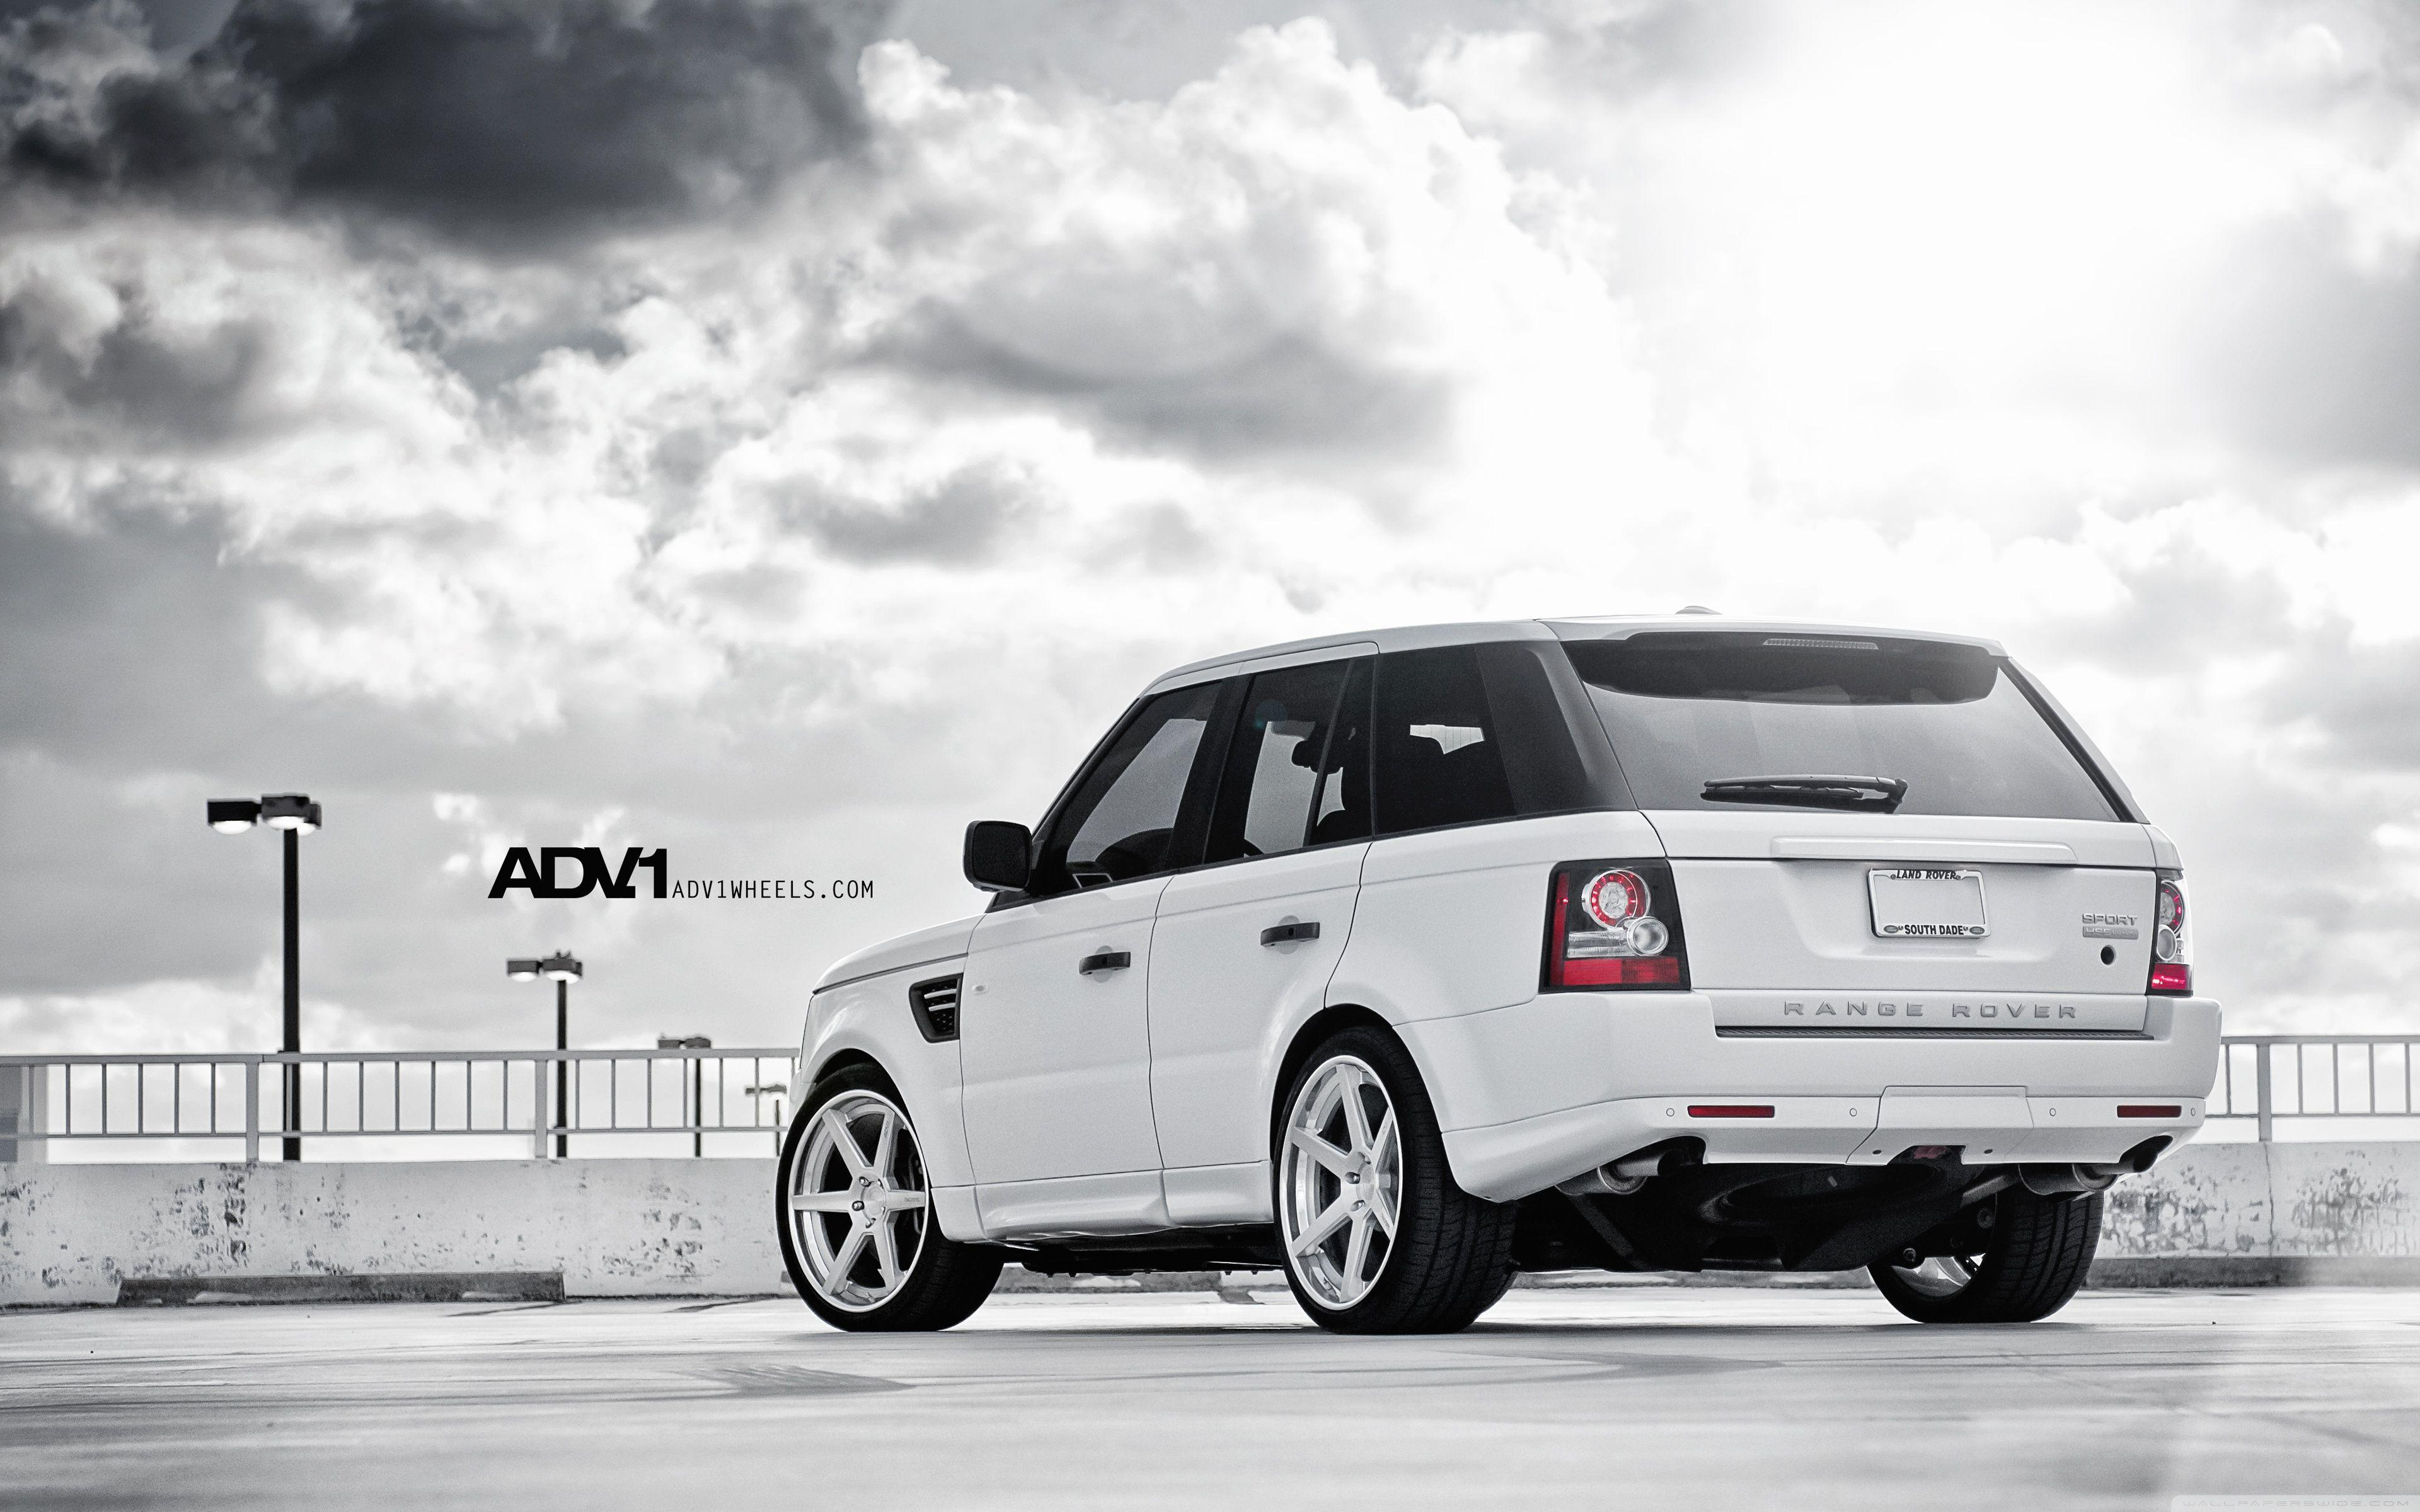 ADV.1 Range Rover HD desktop wallpaper : High Definition : Mobile